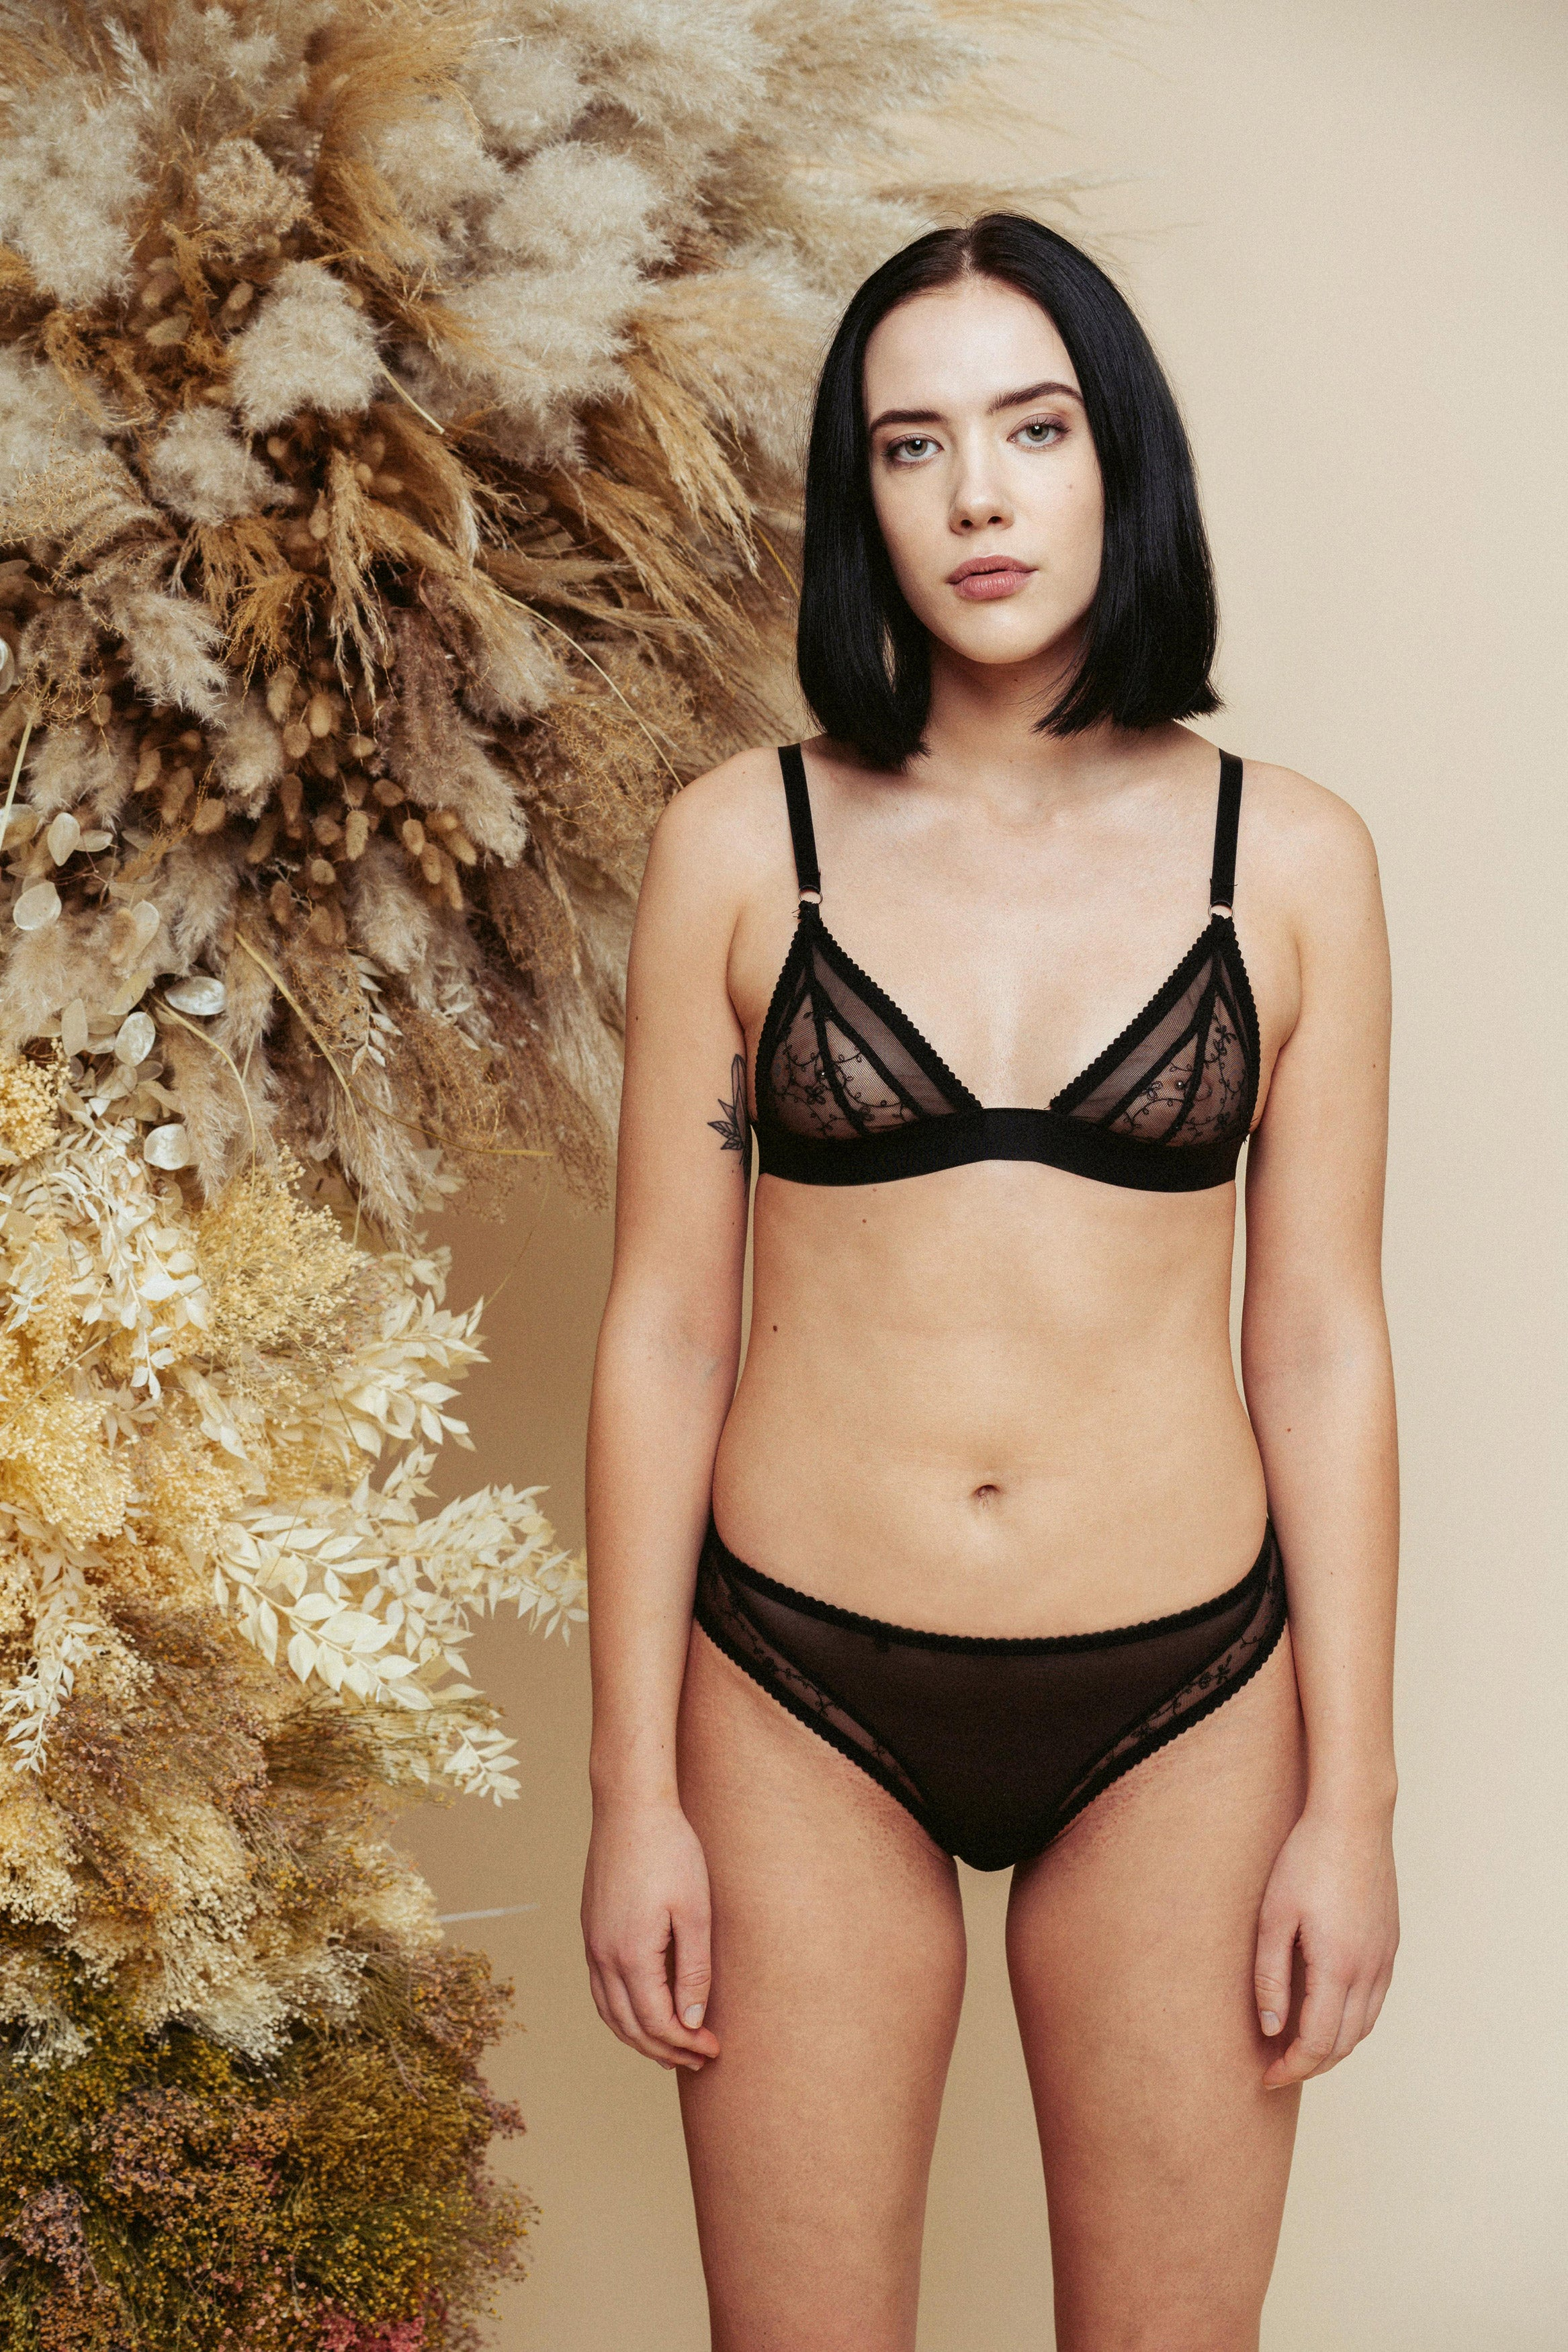 Model wearing the Kauf Triangle Bralette and Brazilian Knicker in black